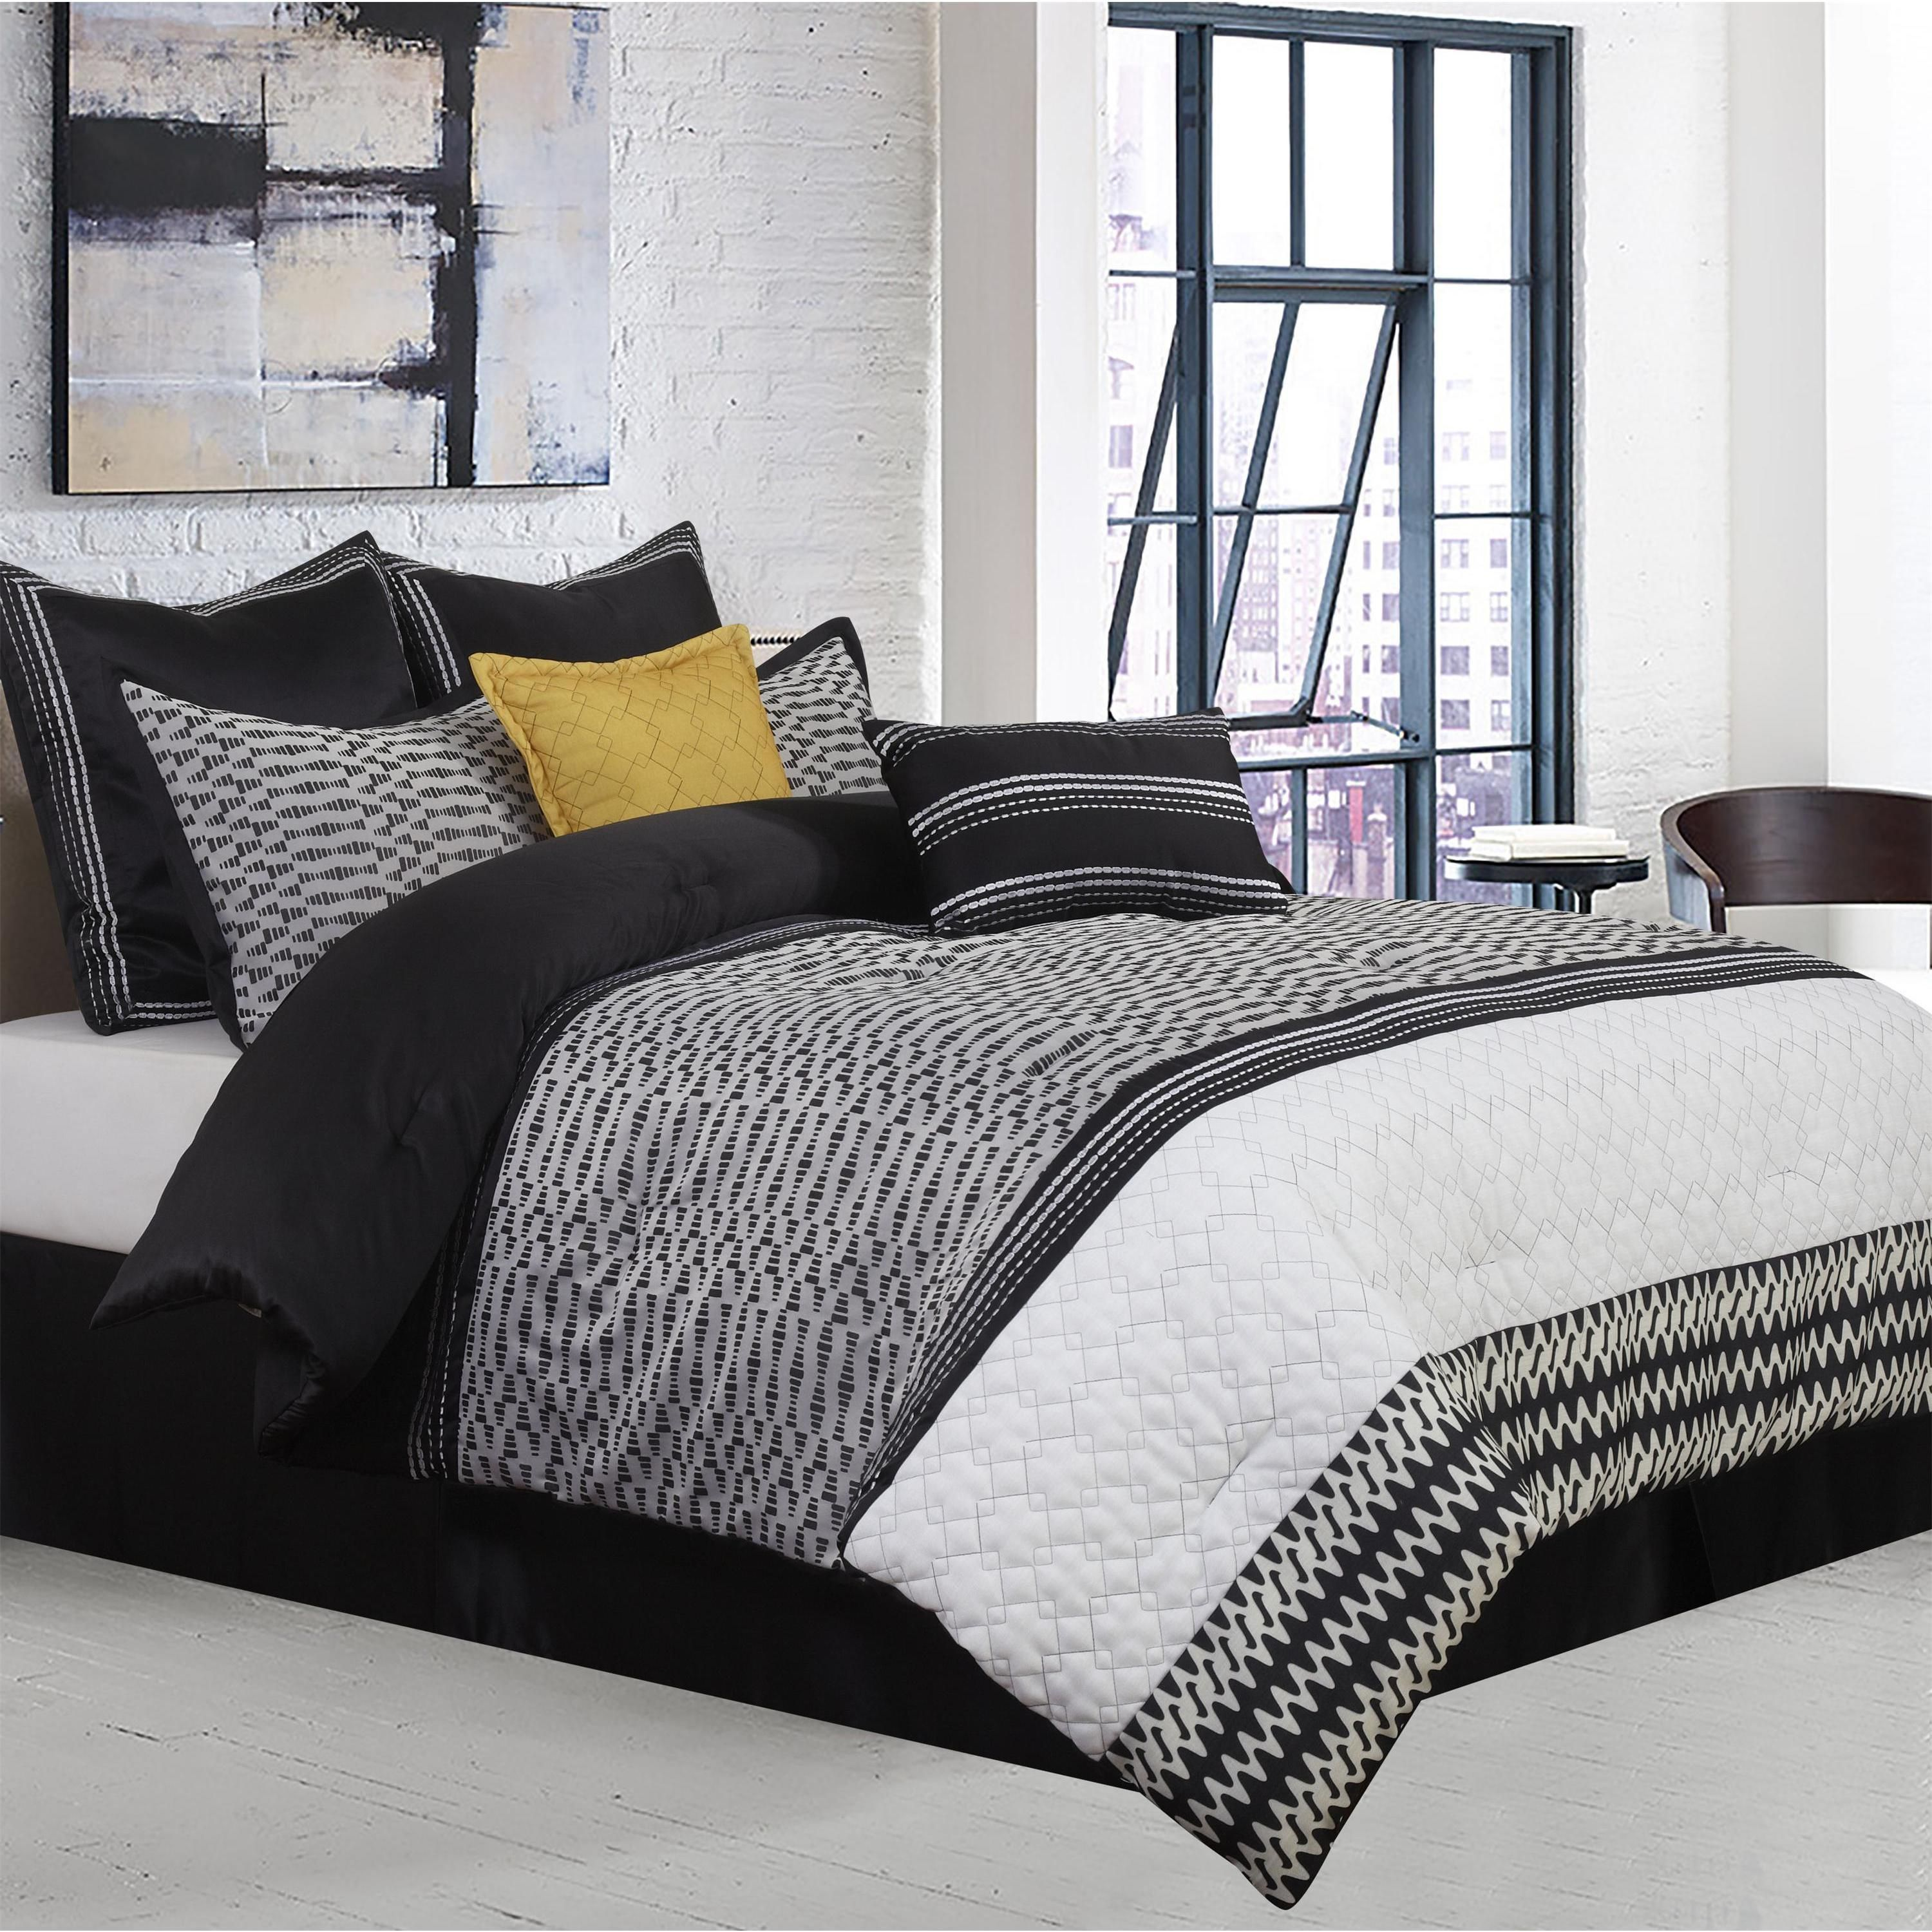 Online Shopping Bedding Furniture Electronics Jewelry Clothing More Comforter Sets Bedroom Comforter Sets Bedding Sets